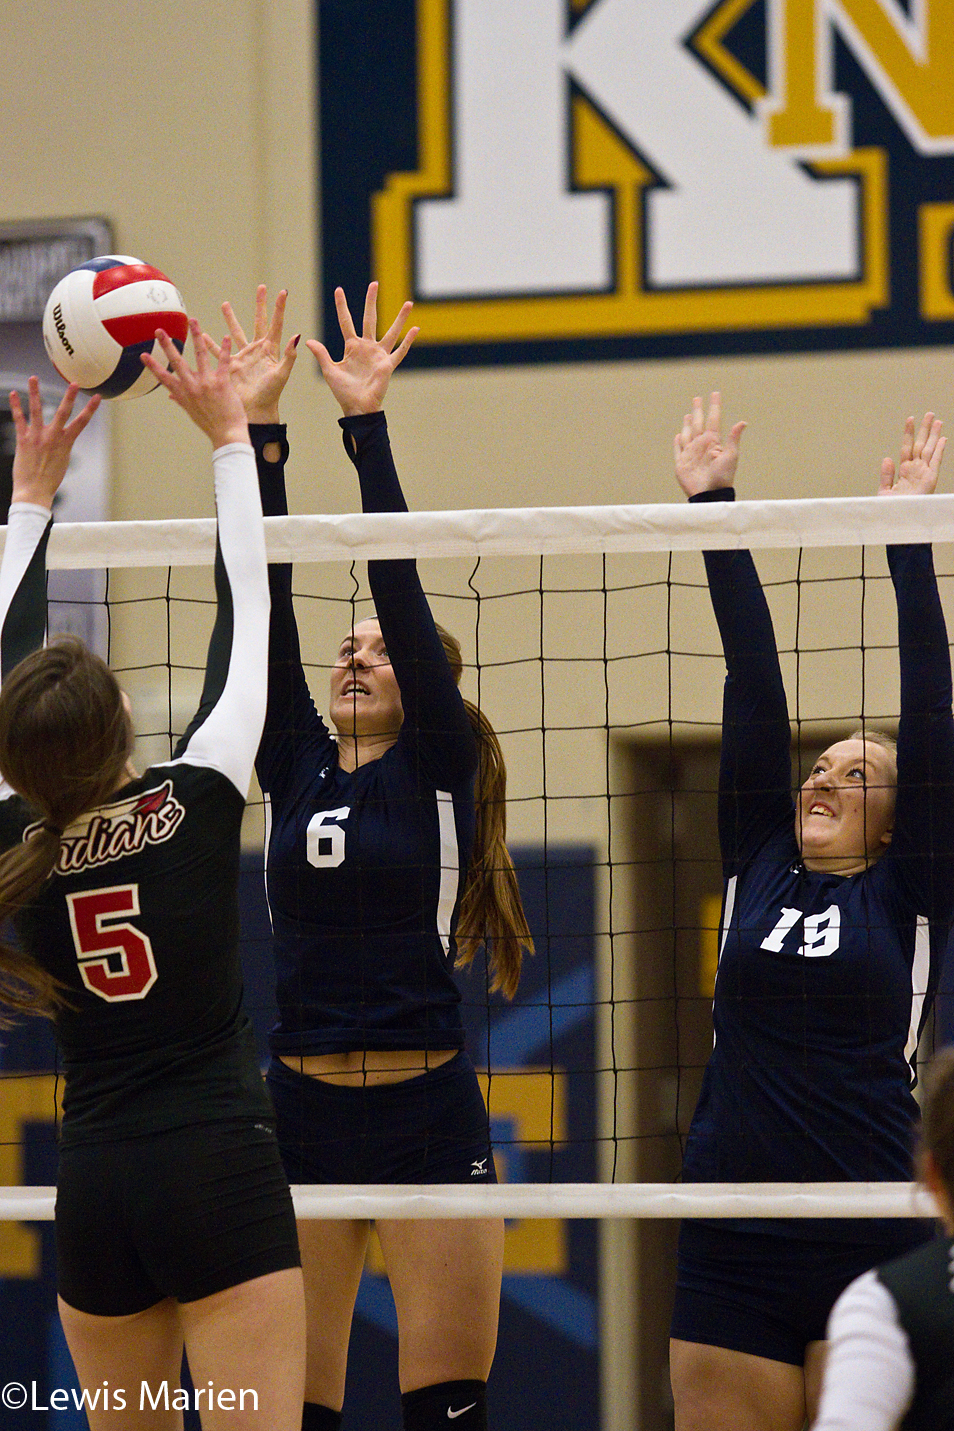 Knoxville's Chloe Palmer (6) and Nicole Lehman (19) defend a shot from Brimfield-Elmwood's Alannah Chaney (5) during the game Sept. 28 at Knoxville High School in Knoxville, Ill. The Blue Bullets lost to the Indians in two sets, 25-15 and 25-22.